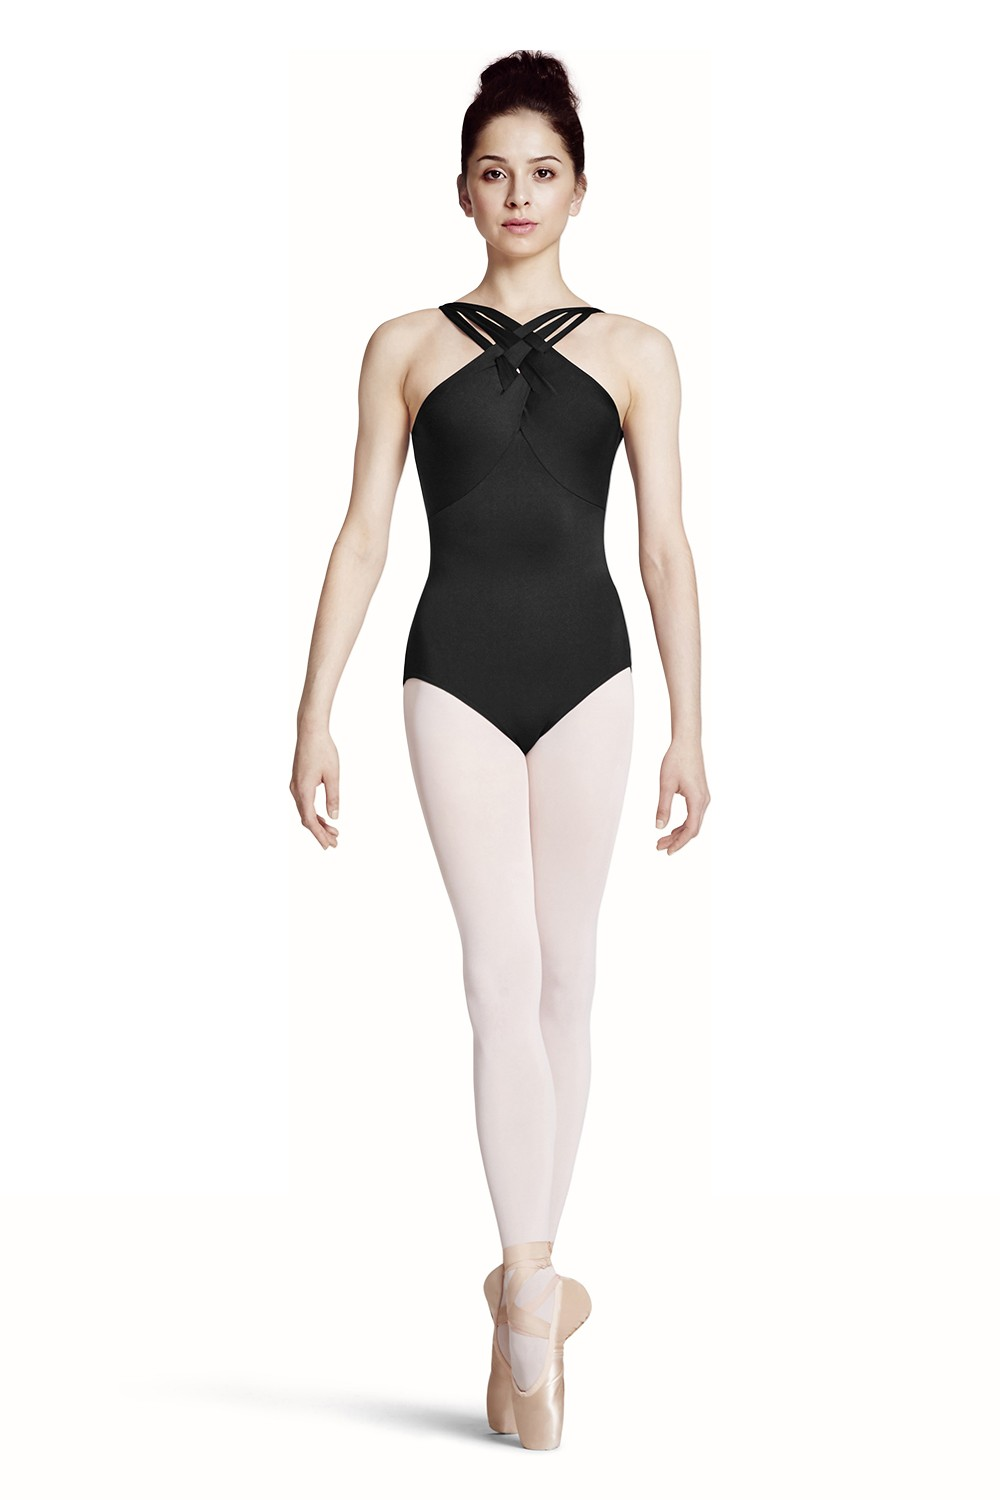 Weave Detail W/ Plaited Strap Leo Women's Dance Leotards